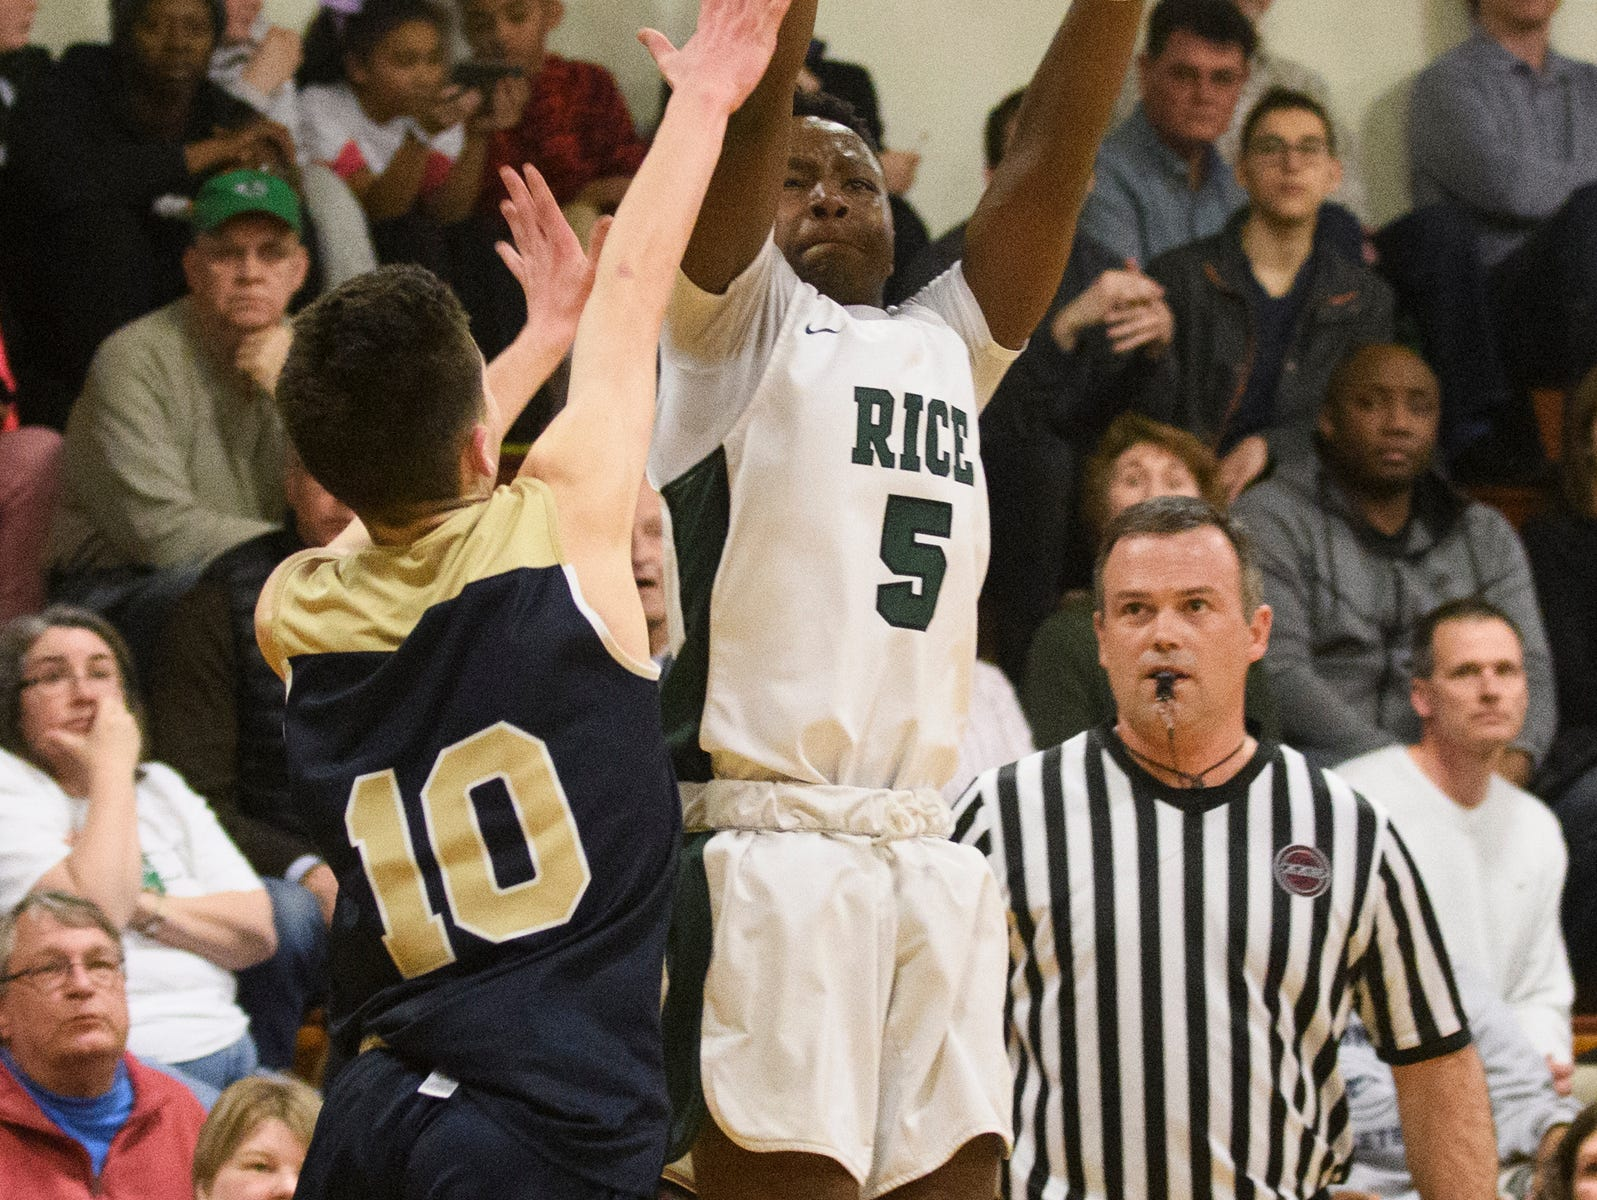 Rice's Mo Awayle (5) shoots the ball over Essex's Aiden Paquette (10) during the boys quarterfinal basketball game between the Essex Hornets and the Rice Green Knights at Rice Memorial High School on Friday night March 8, 2019 in South Burlington, Vermont.